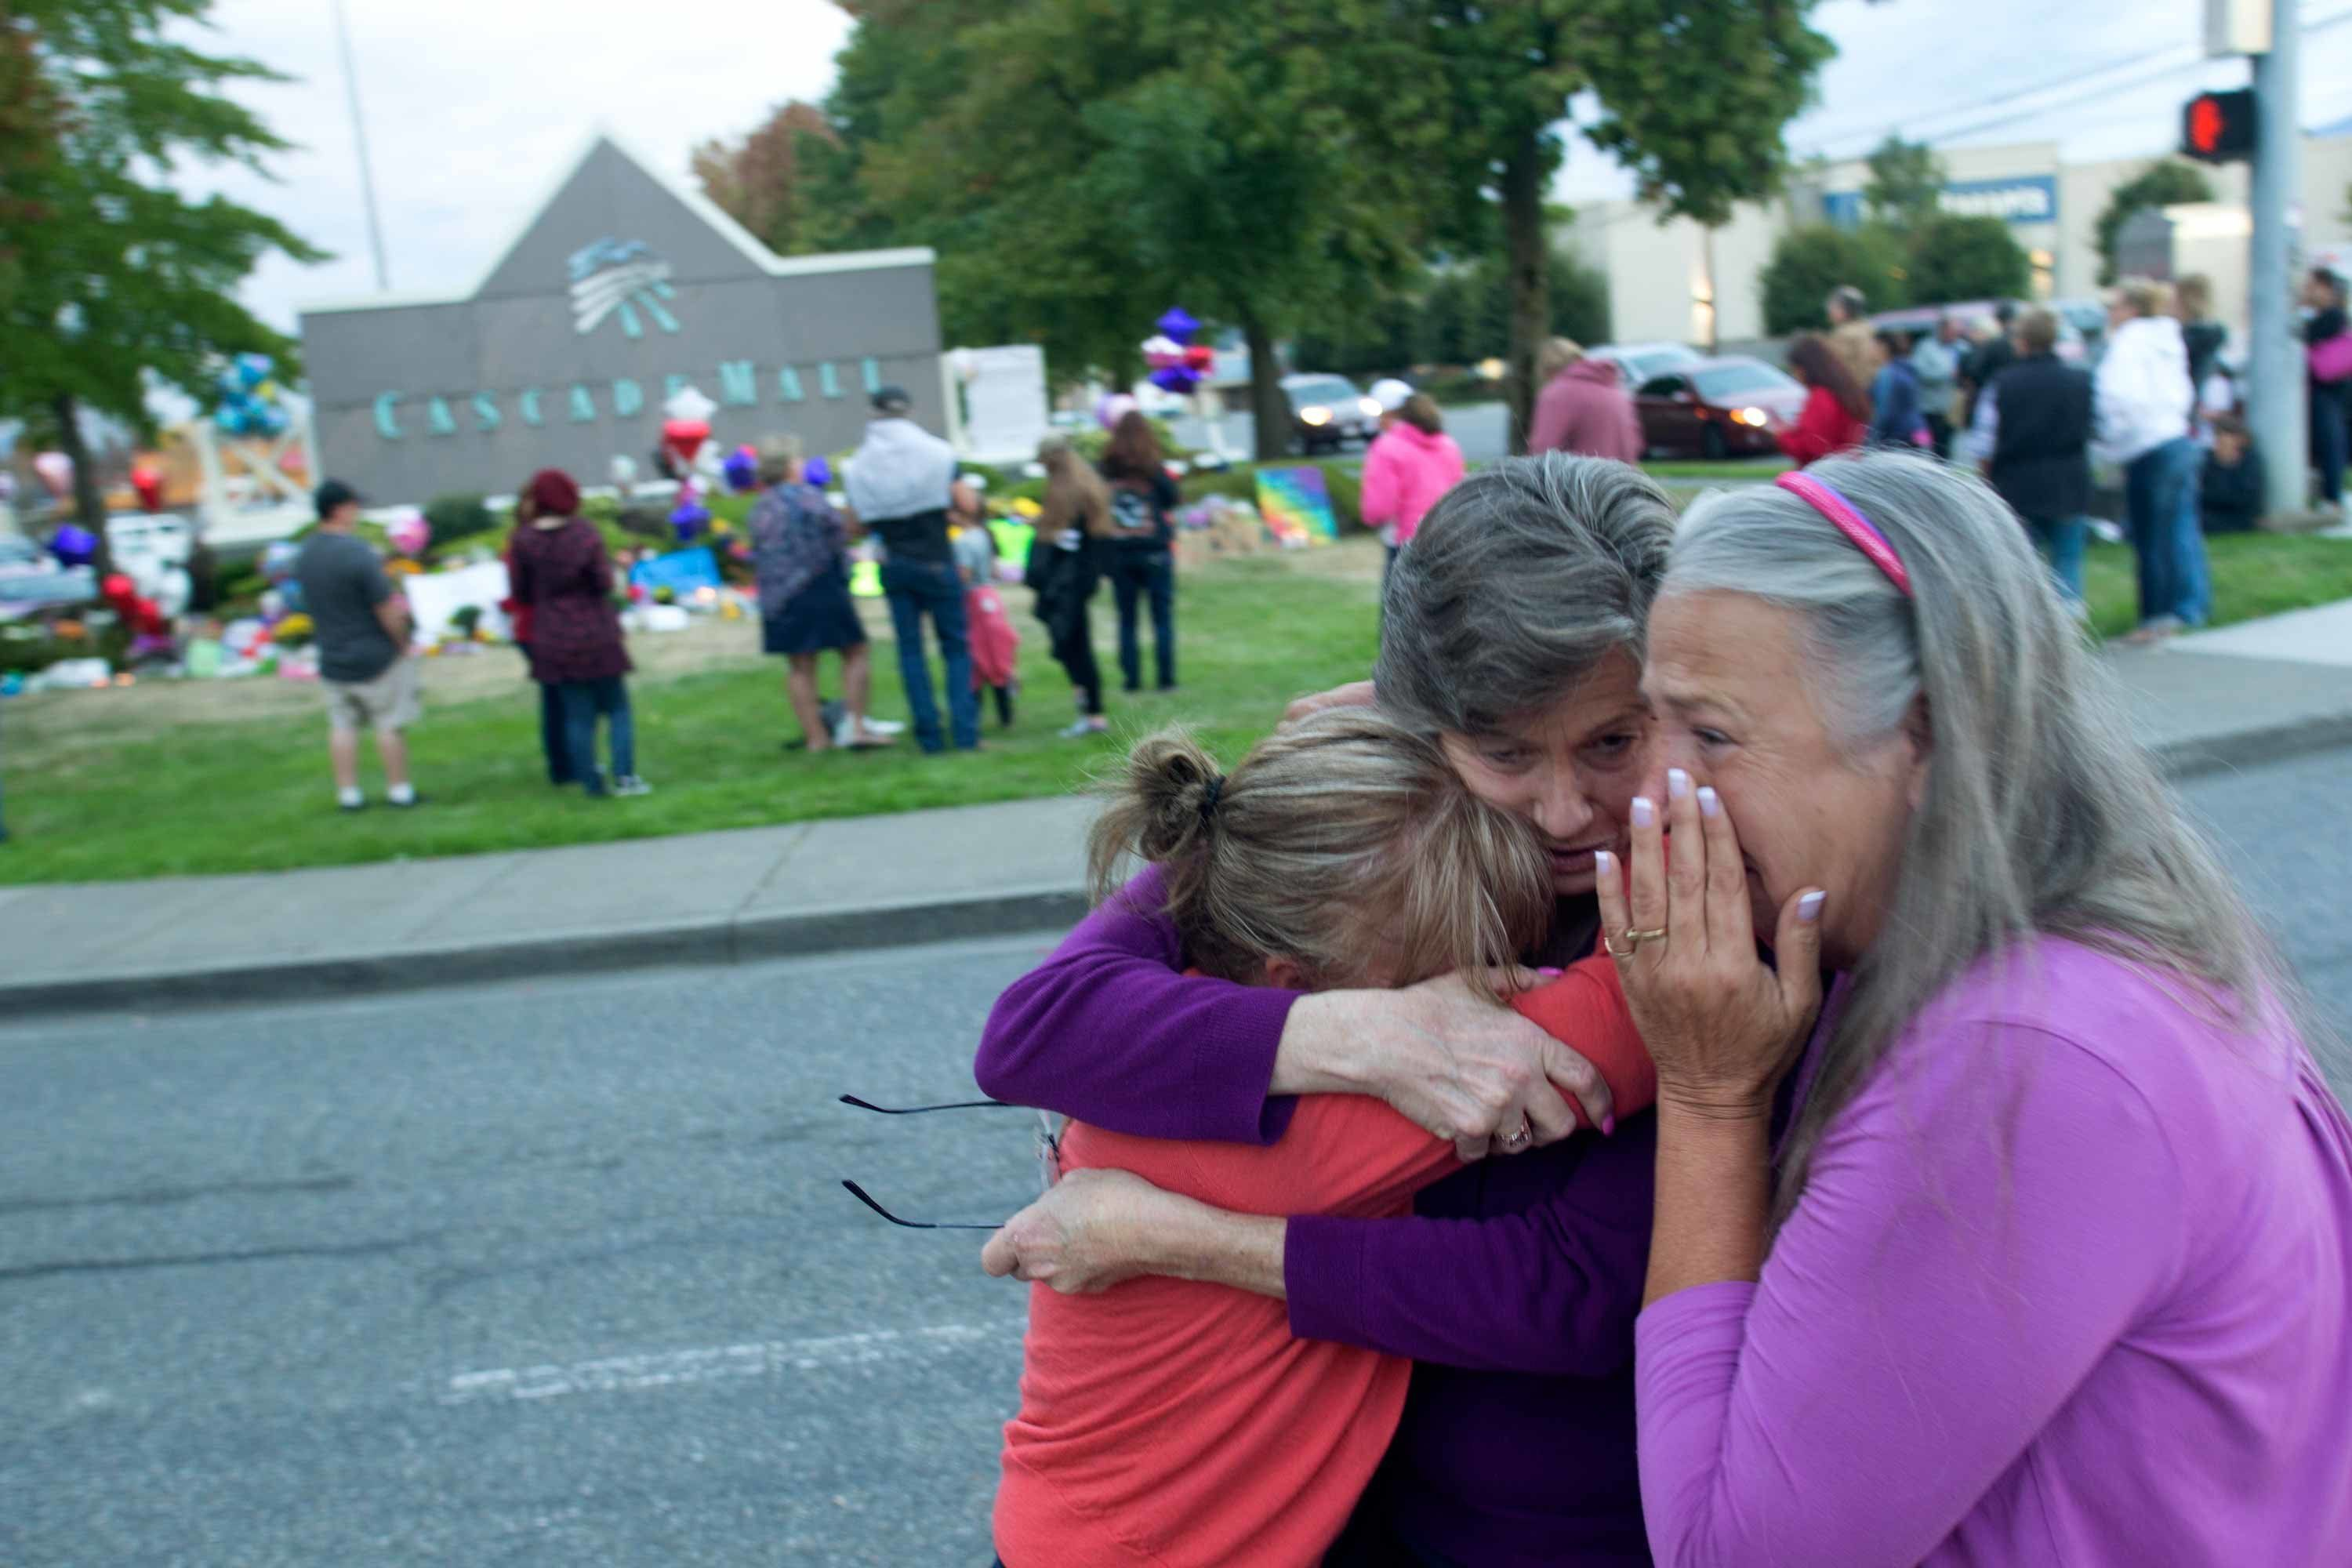 BURLINGTON, WA - SEPTEMBER 26: (L-R) Darci Ridenhour, Kathy Shelman, and Patti Bannister weep after leaving flowers at a memorial outside the Cascade Mall on September 26, 2016 in Burlington, Washington. A candlelight vigil was held outside the Macy's department store where five people who  were shot and killed by a gunman on September 24. The suspect, Arcan Cetin of Oak Harbor, Washington, made a court appearance today. (Photo by Karen Ducey/Getty Images)